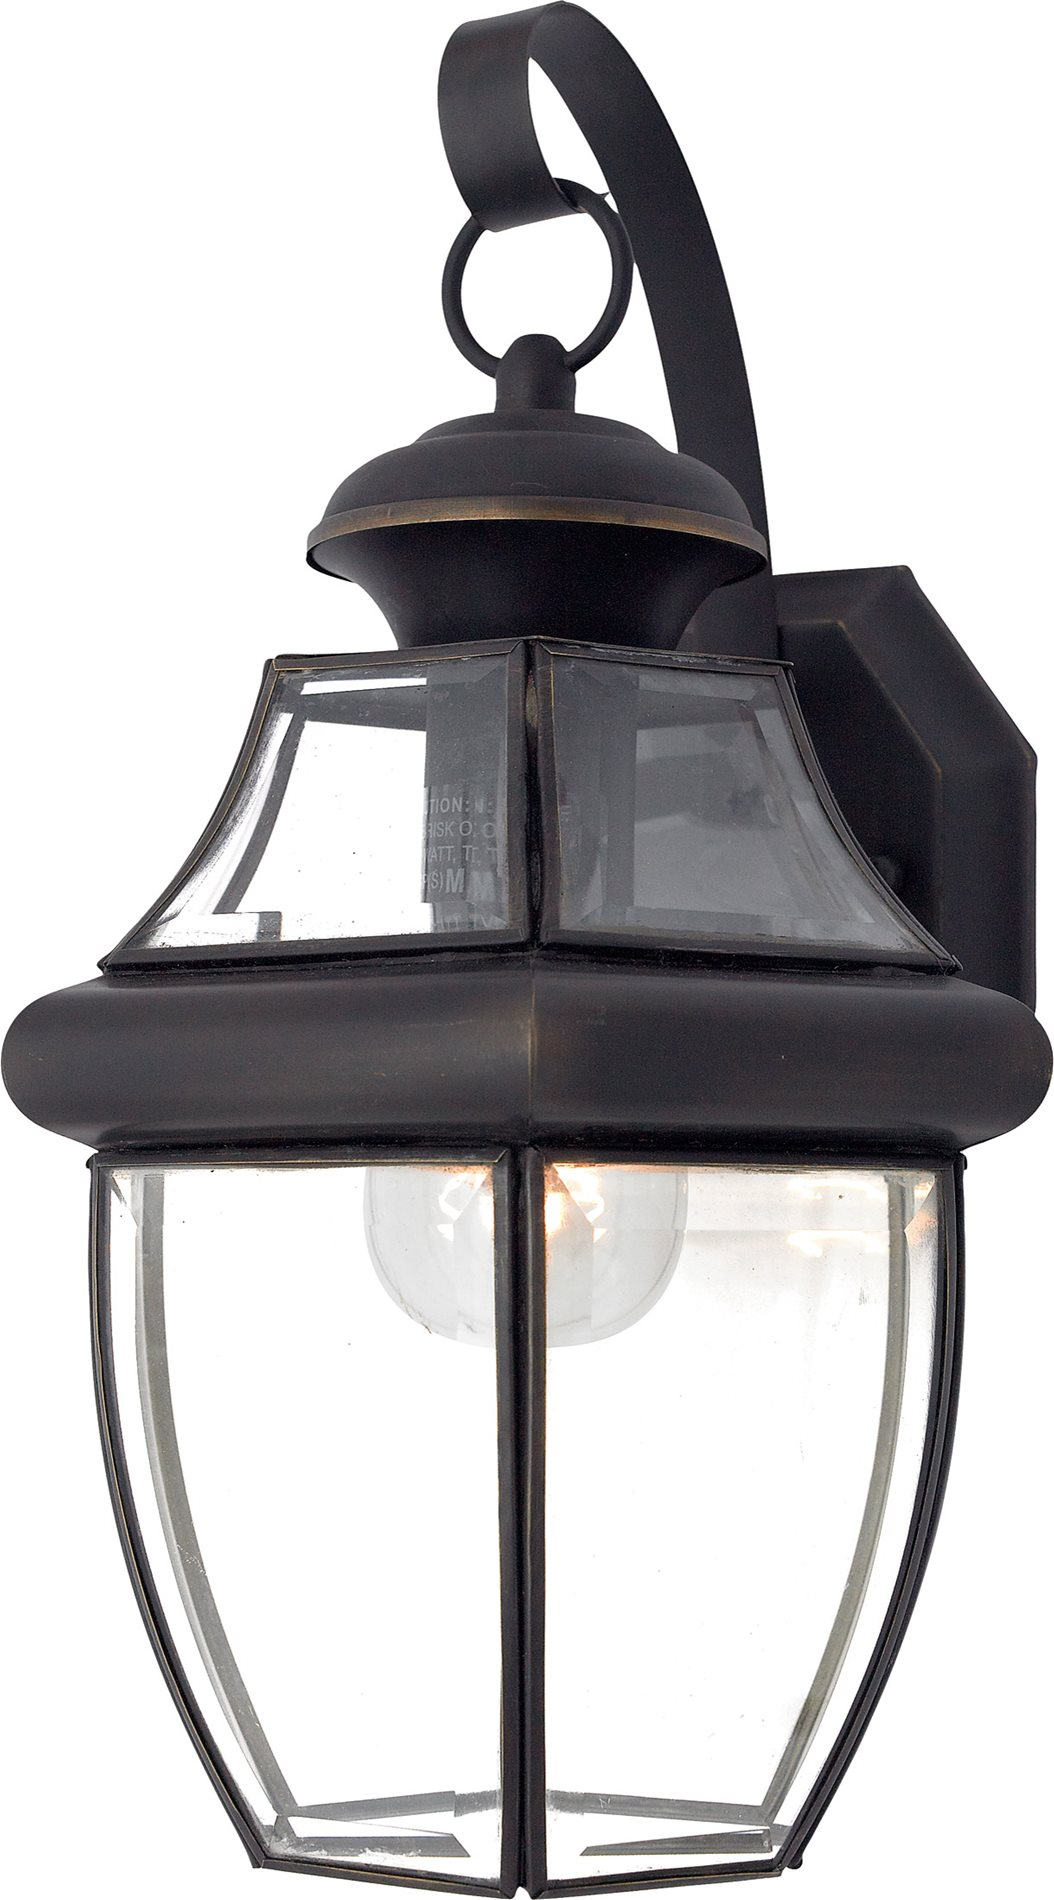 Quoizel ny8316z newbury traditional outdoor wall sconce qz for Outdoor sconce lighting fixtures